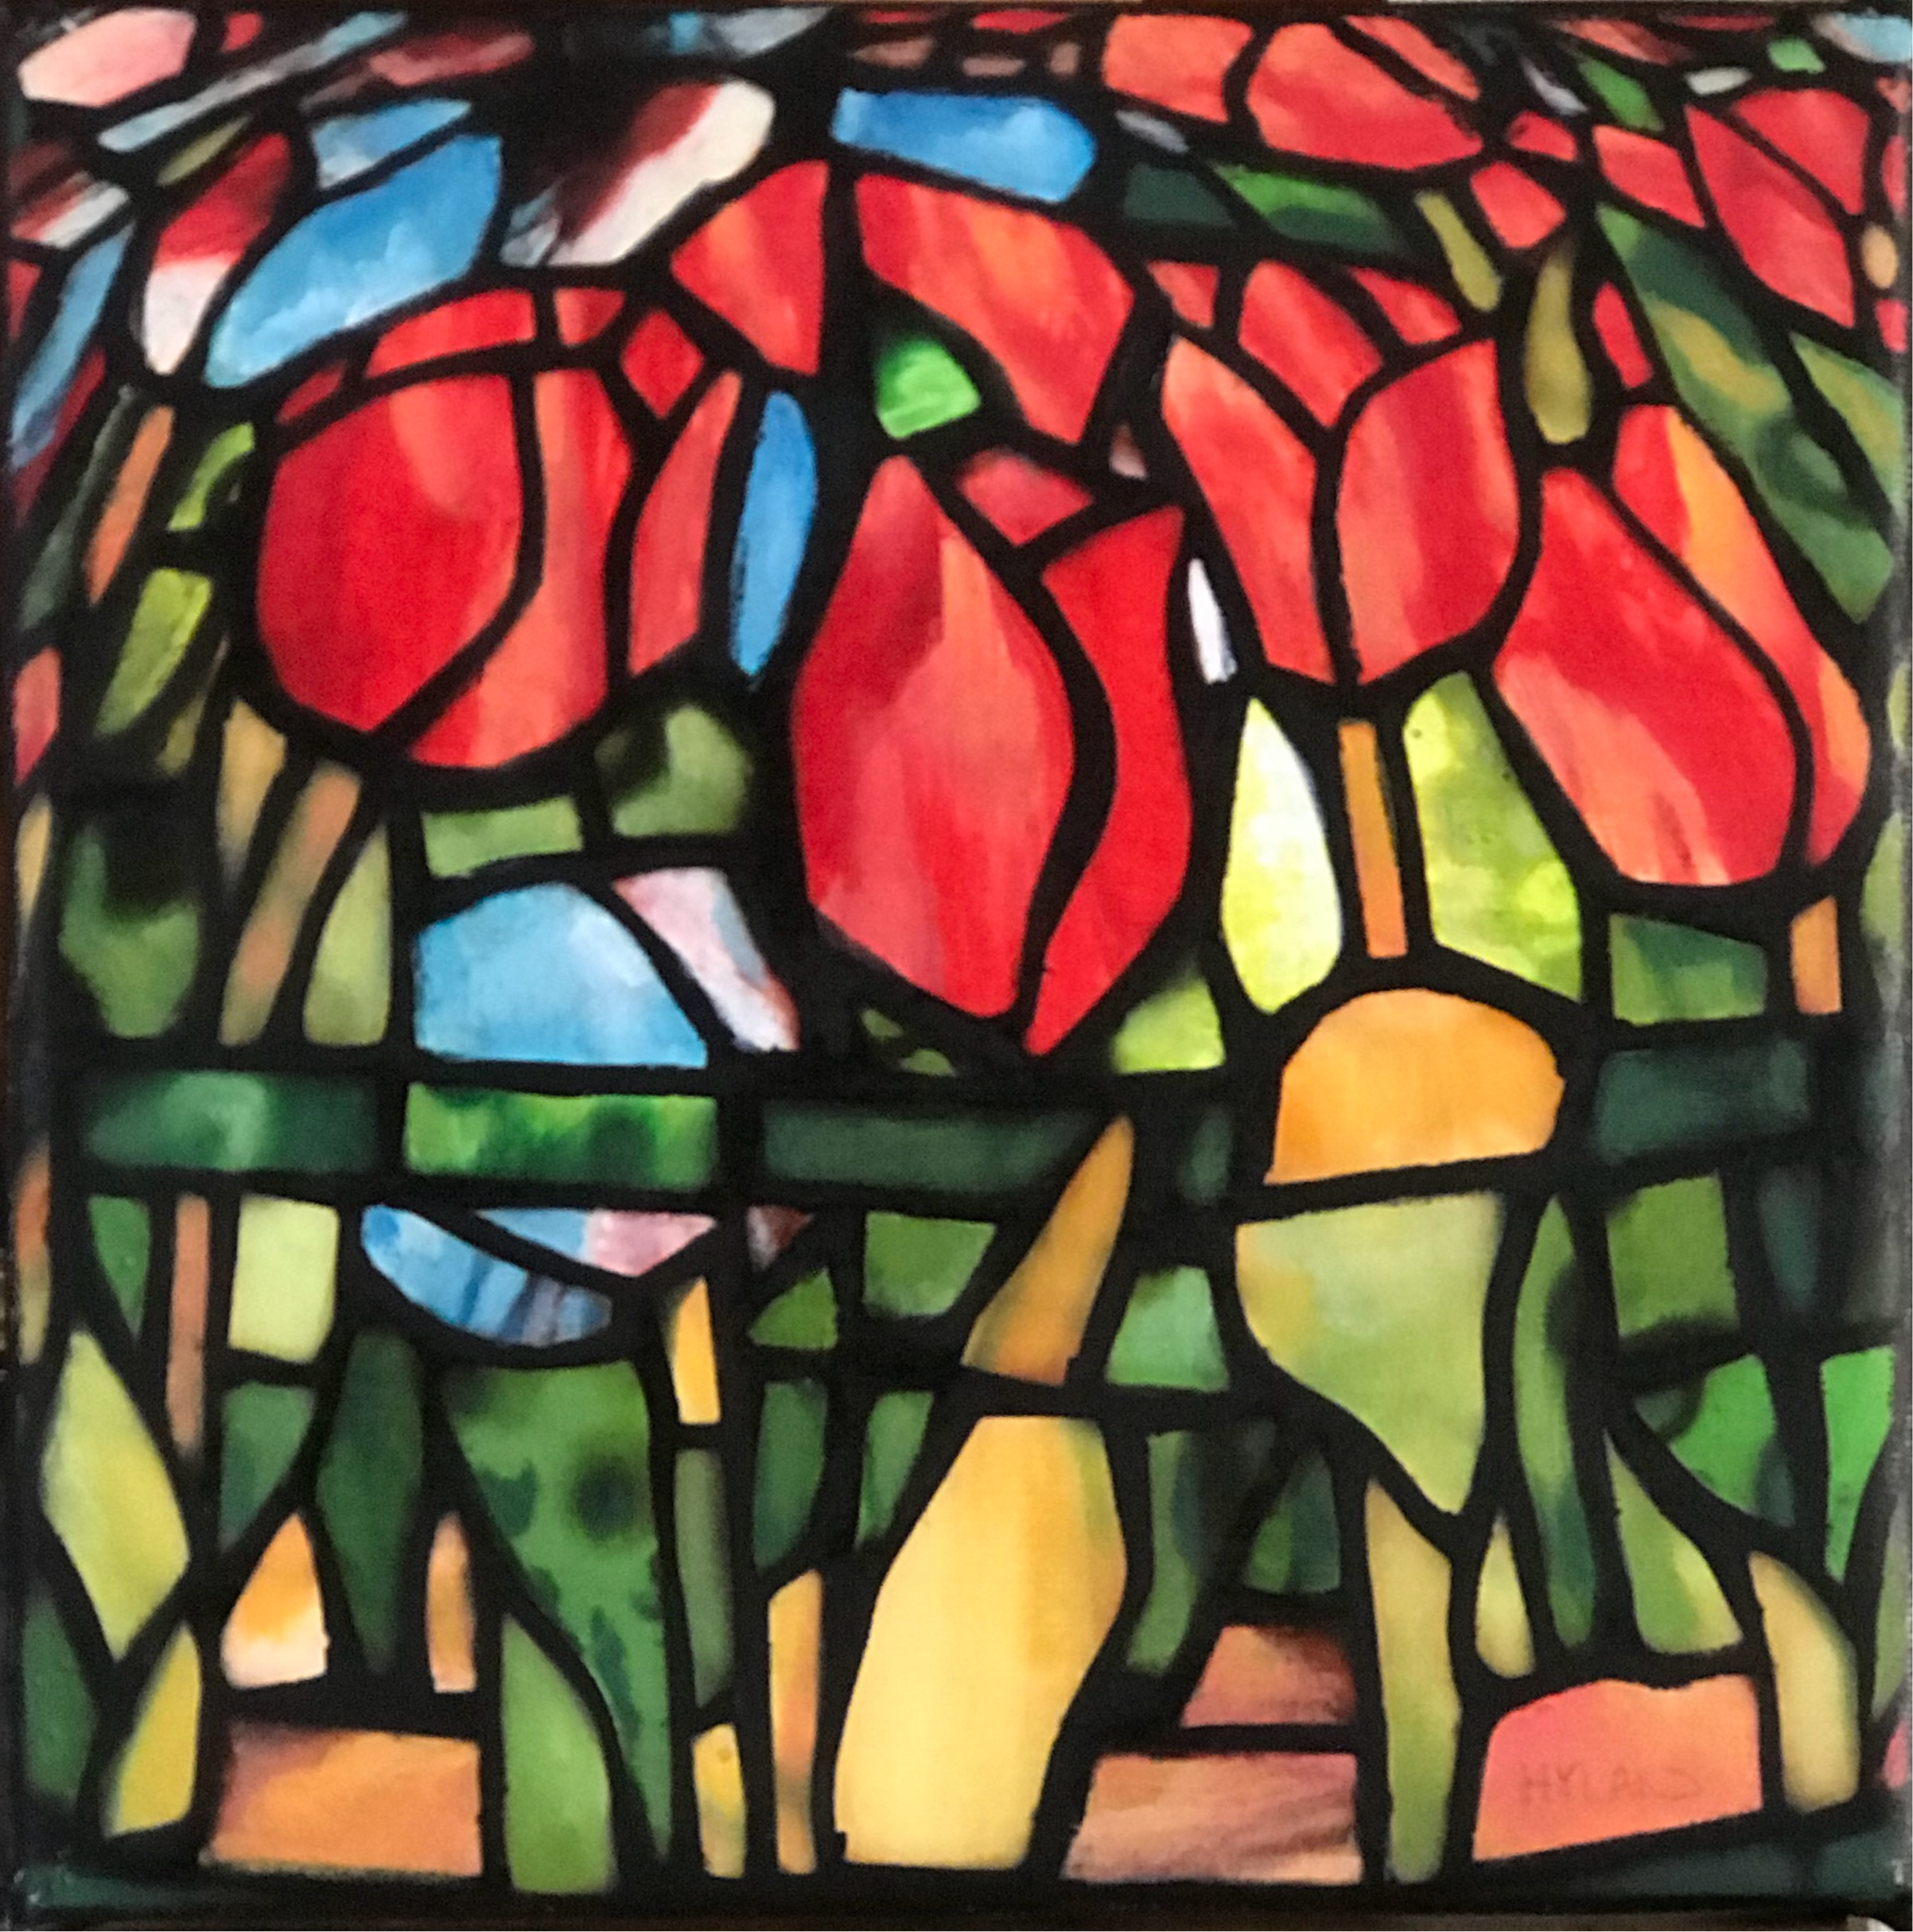 John Hyland │ This Same Flower That Smiles Today │ Oil on Canvas │ 8 inches square or 20 ¼ cm square